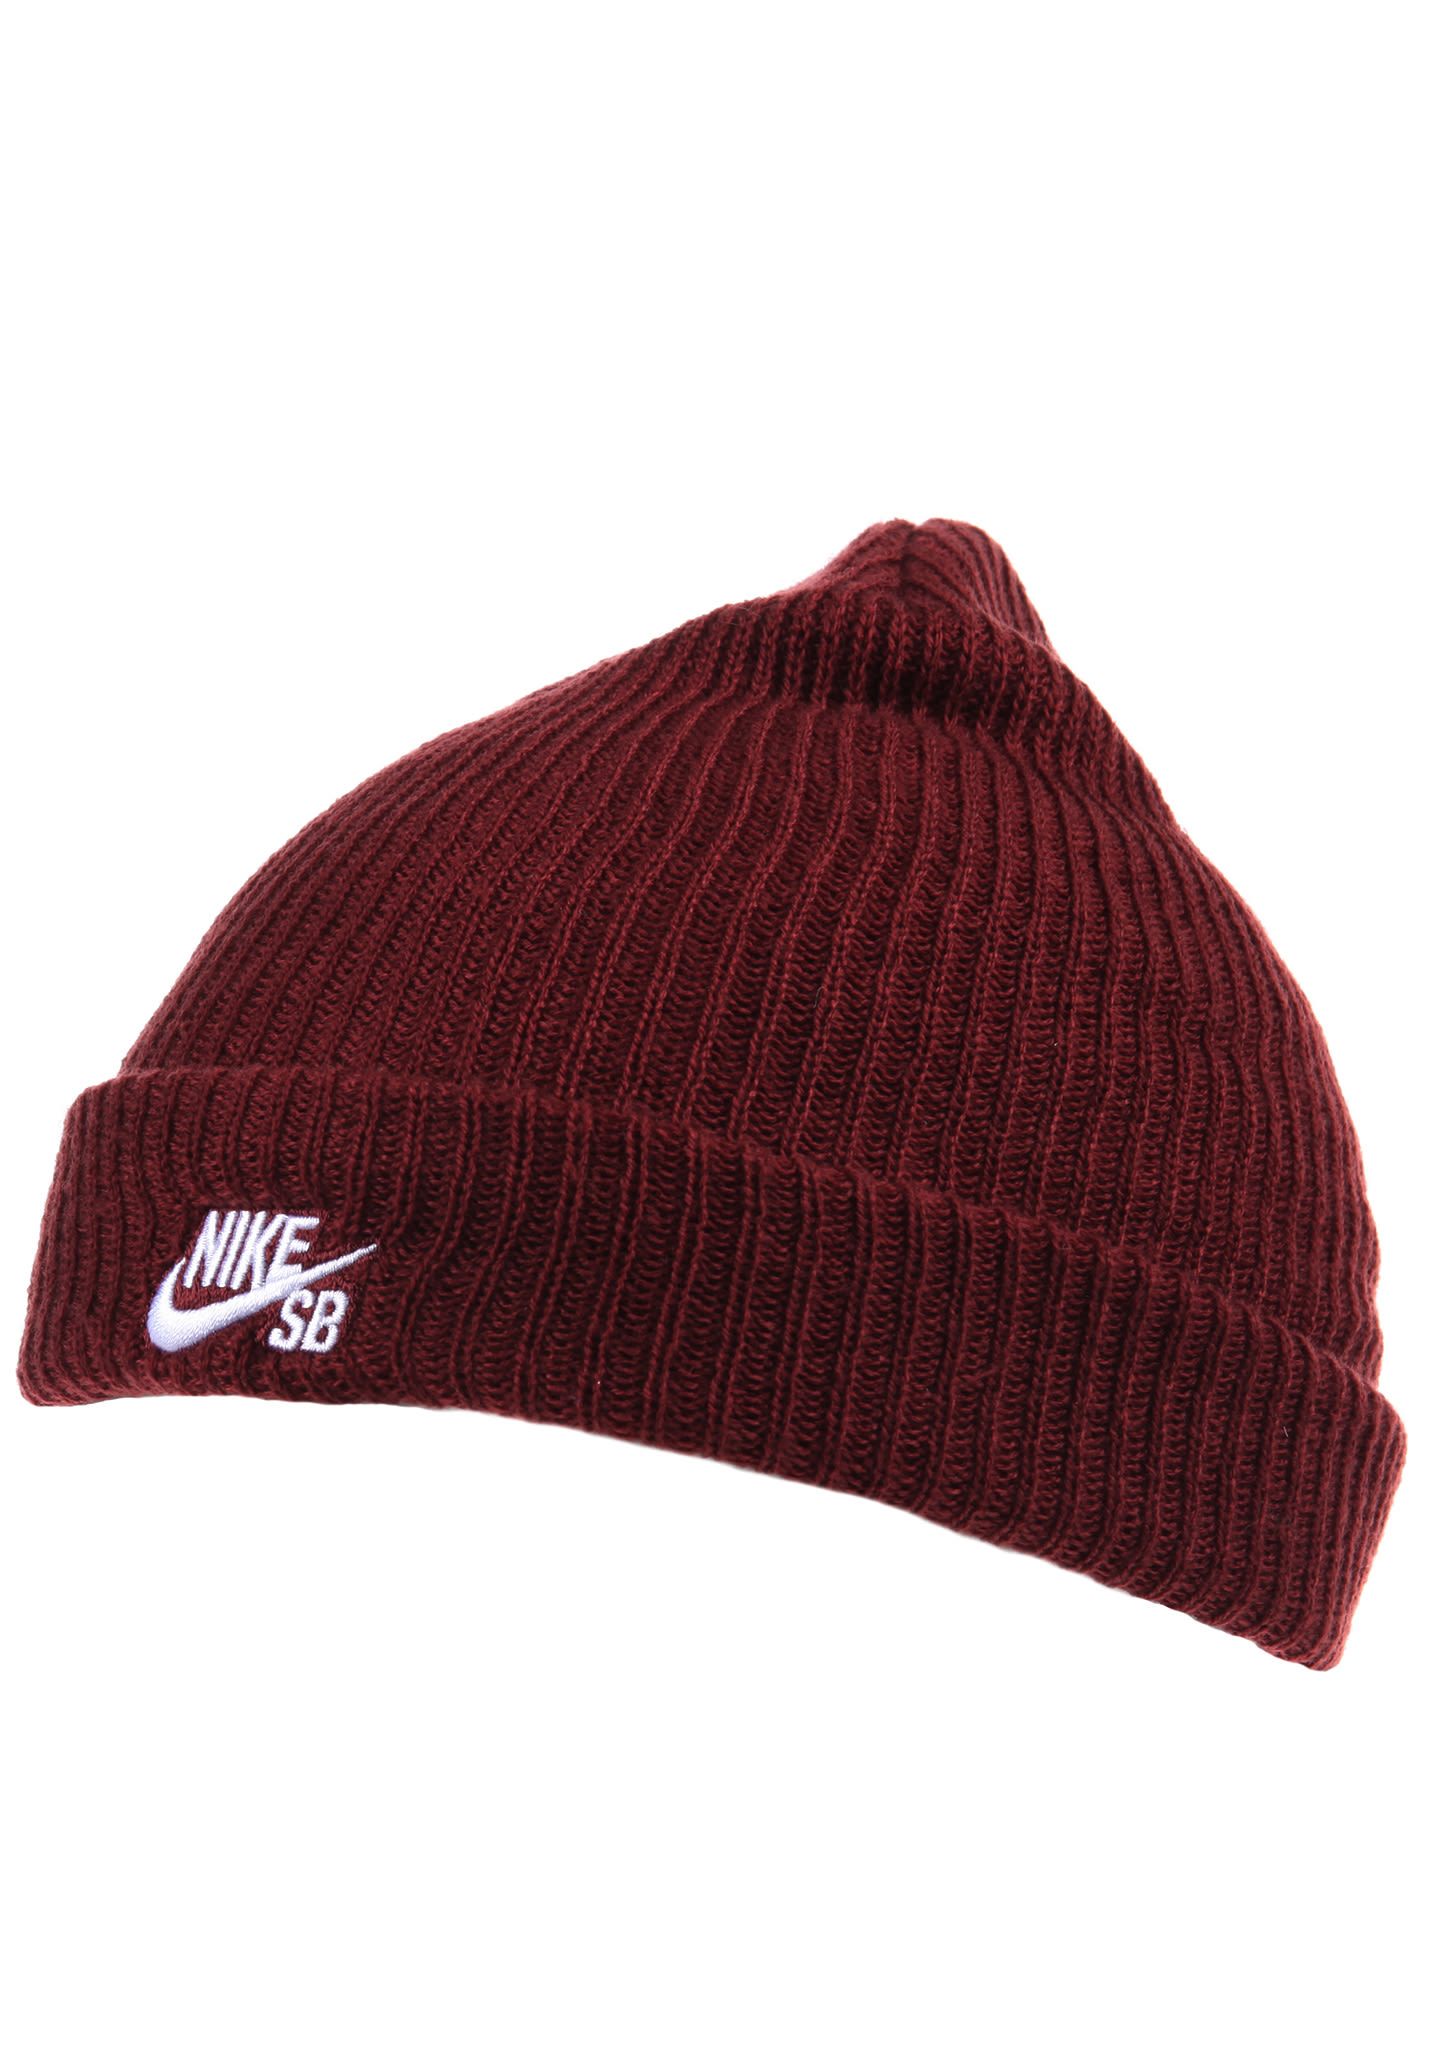 7d9ce67a NIKE SB Fisherman - Beanie - Red - Planet Sports